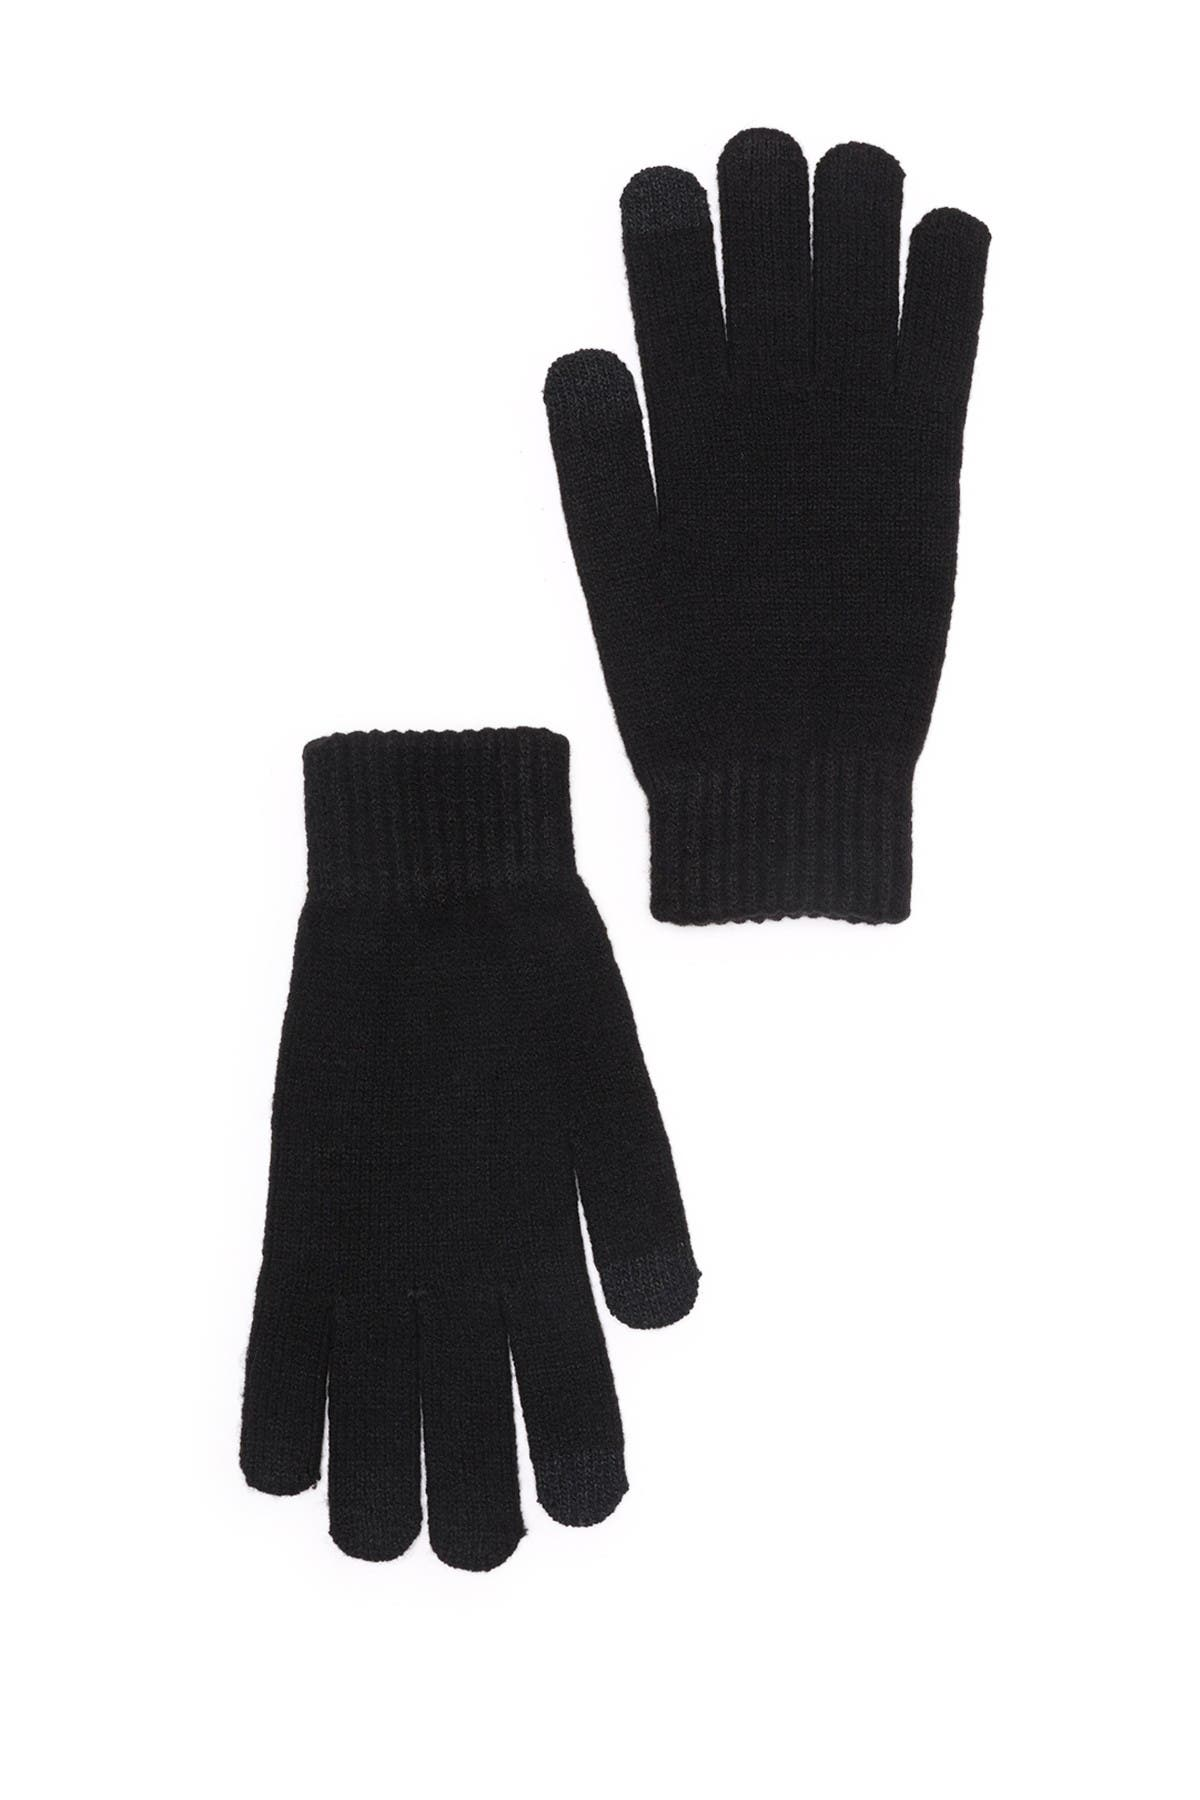 Image of Fownes Bros Shima Knit Gloves